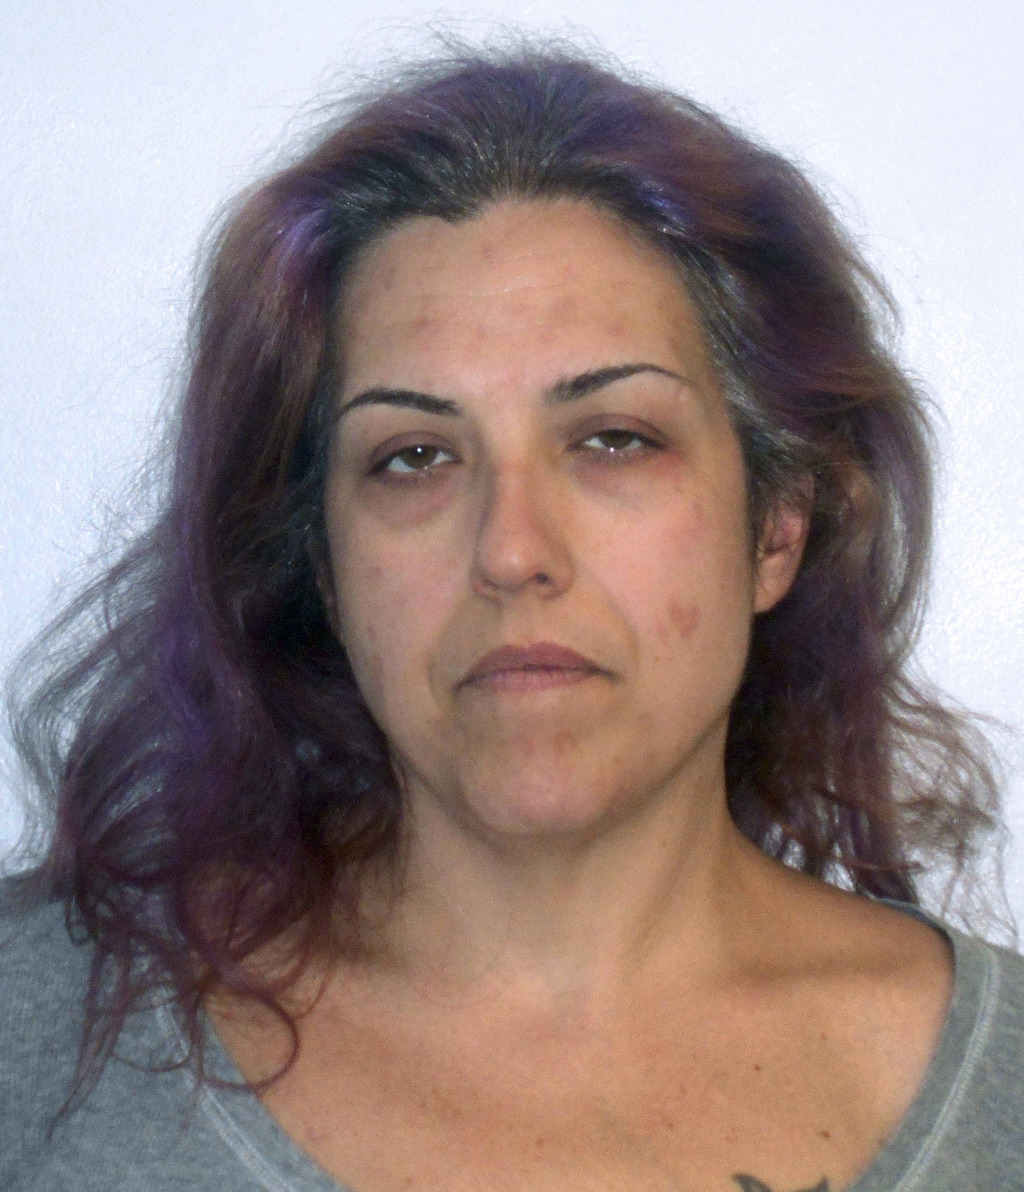 This booking photo released Wednesday, March 8, 2017, by the Concord, N.H., Police Department shows Rhianna Frenette arrested and accus...